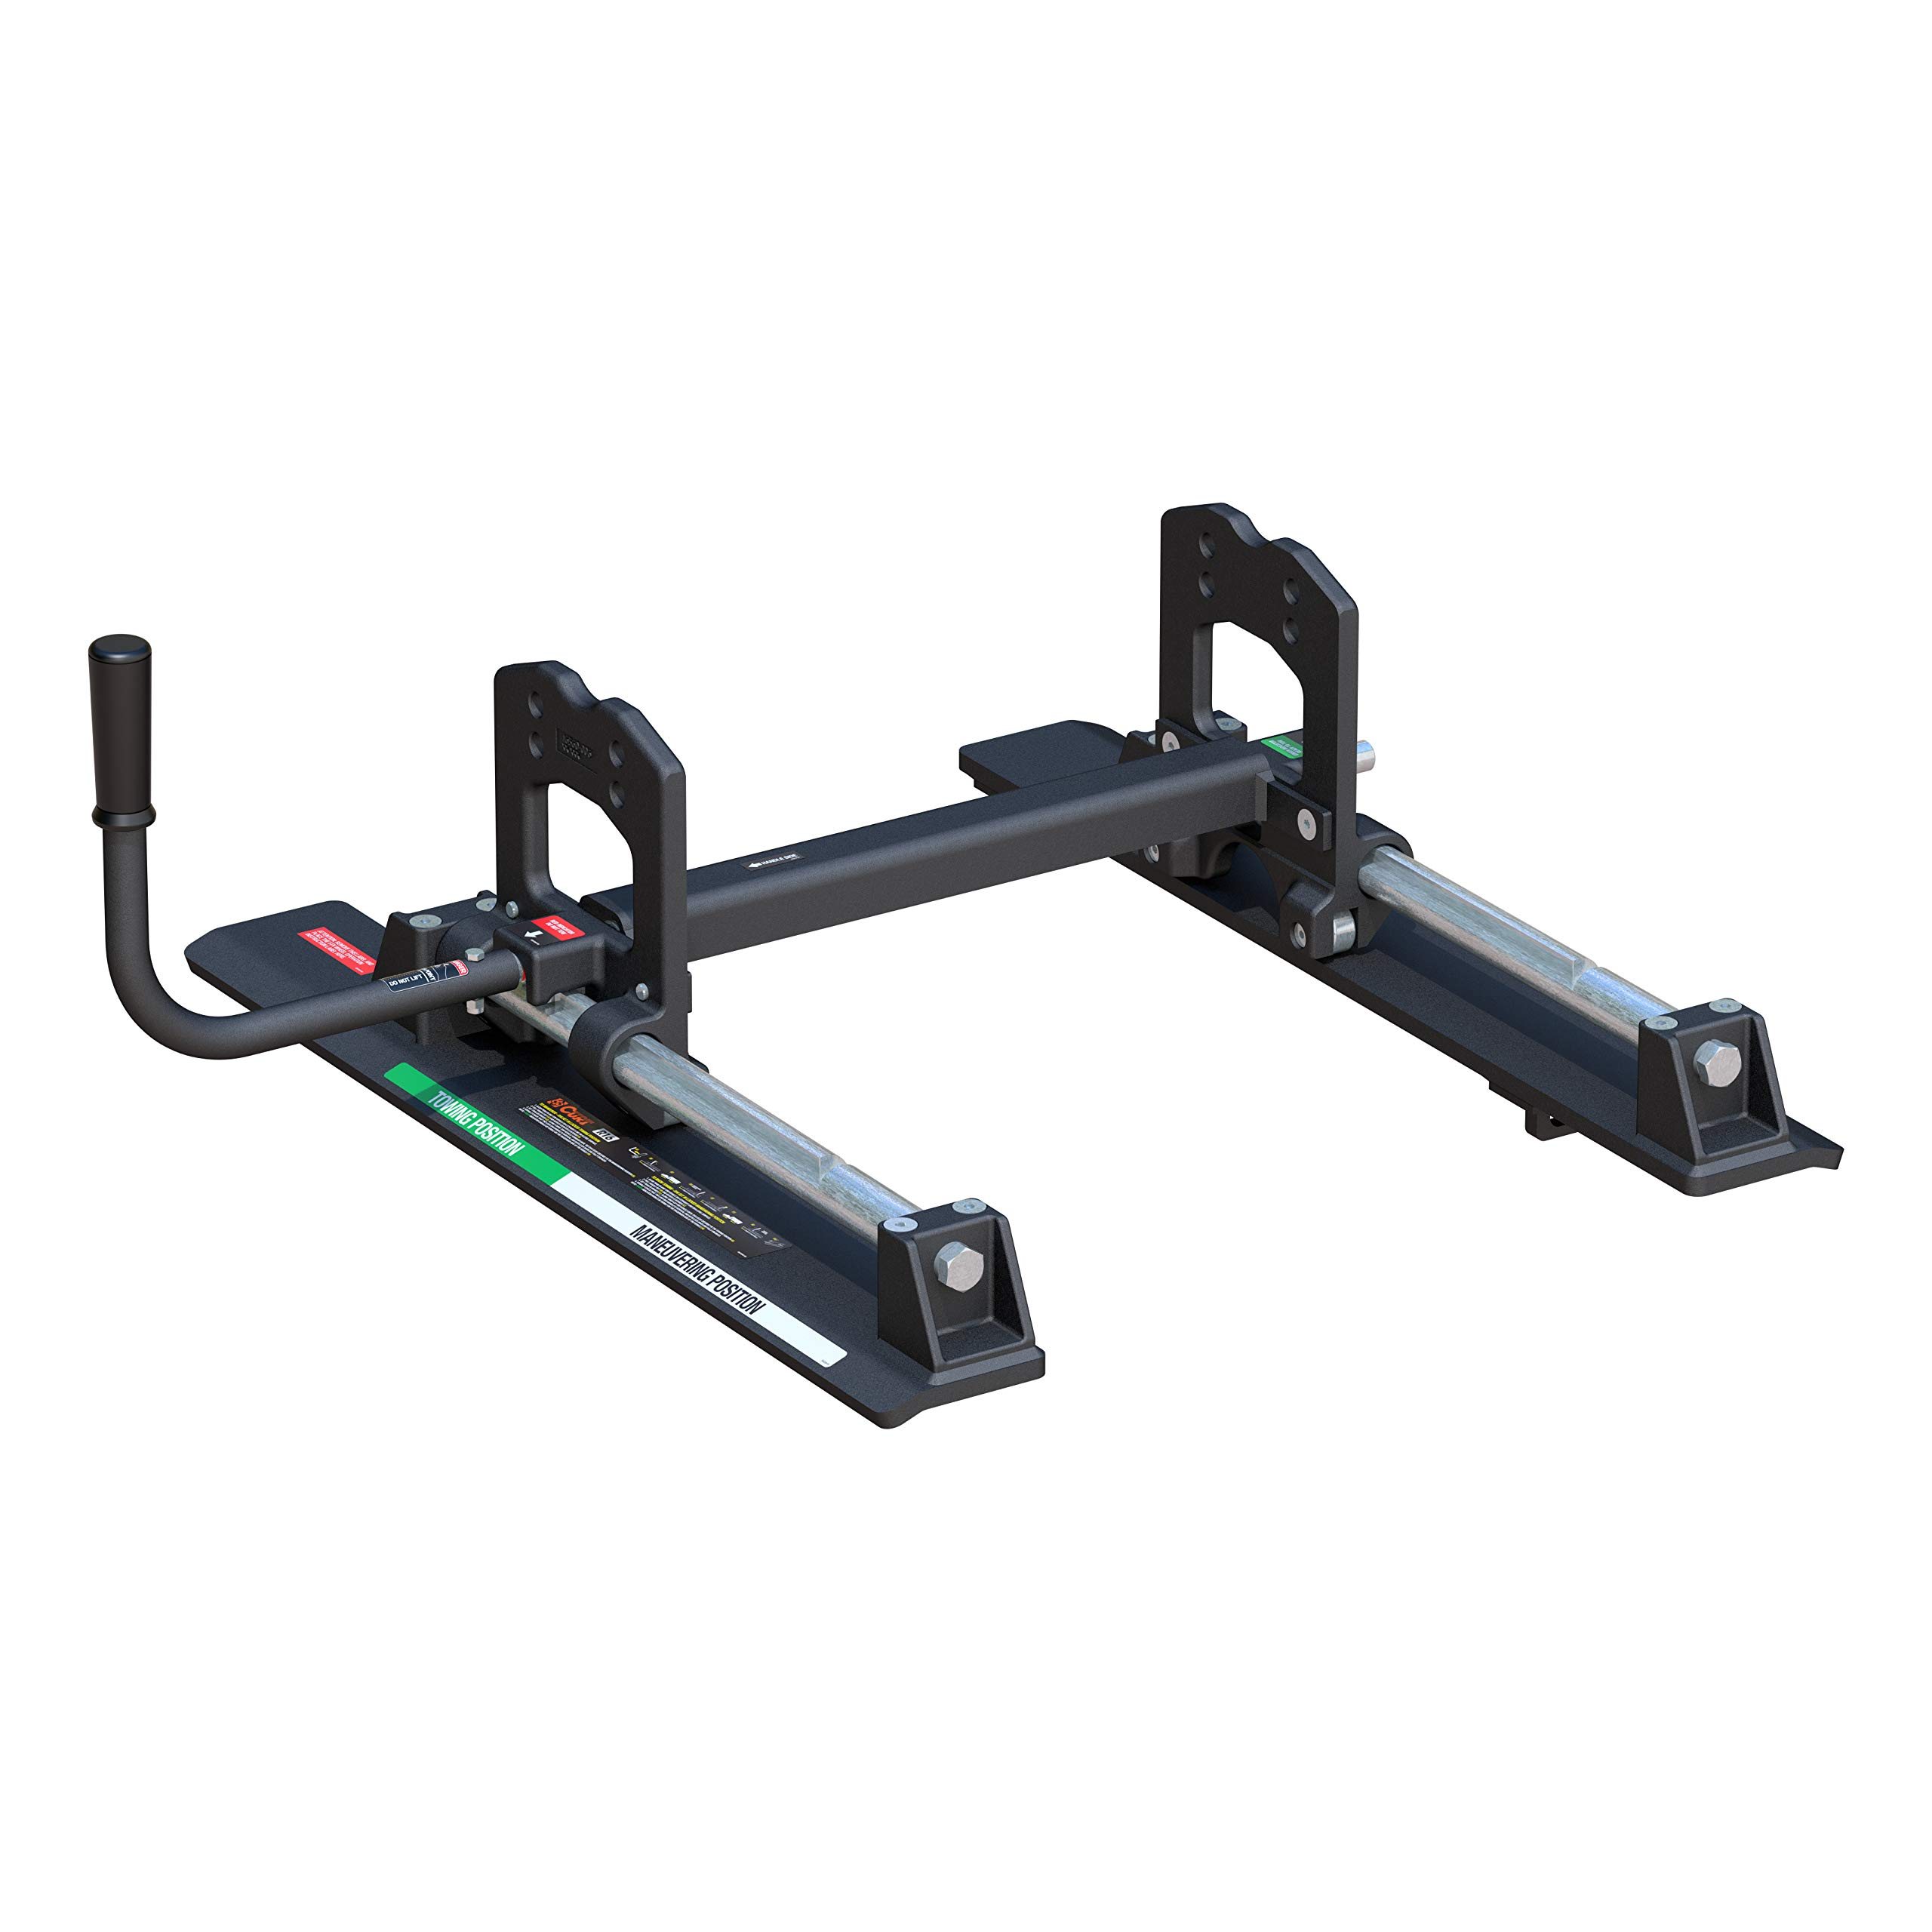 CURT 16560 R16 5th Wheel Roller for Short Bed Trucks, 16,000 lbs by CURT